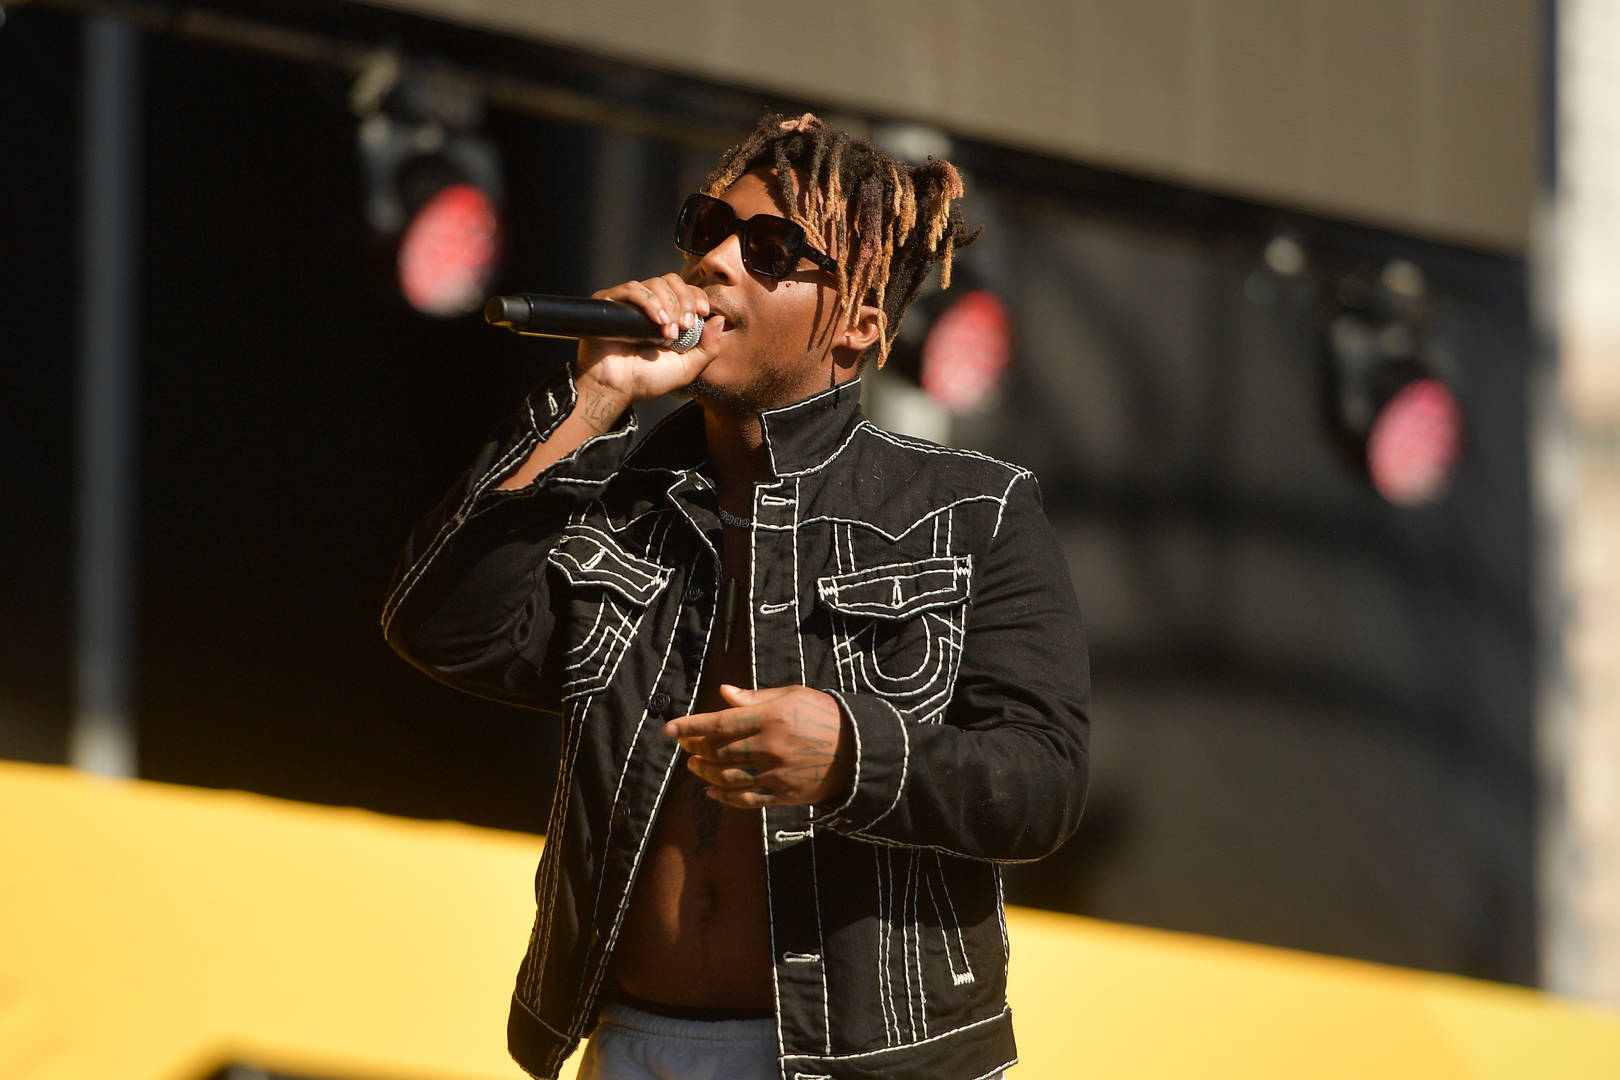 Juice Wrld dead at 21 after suffering seizure